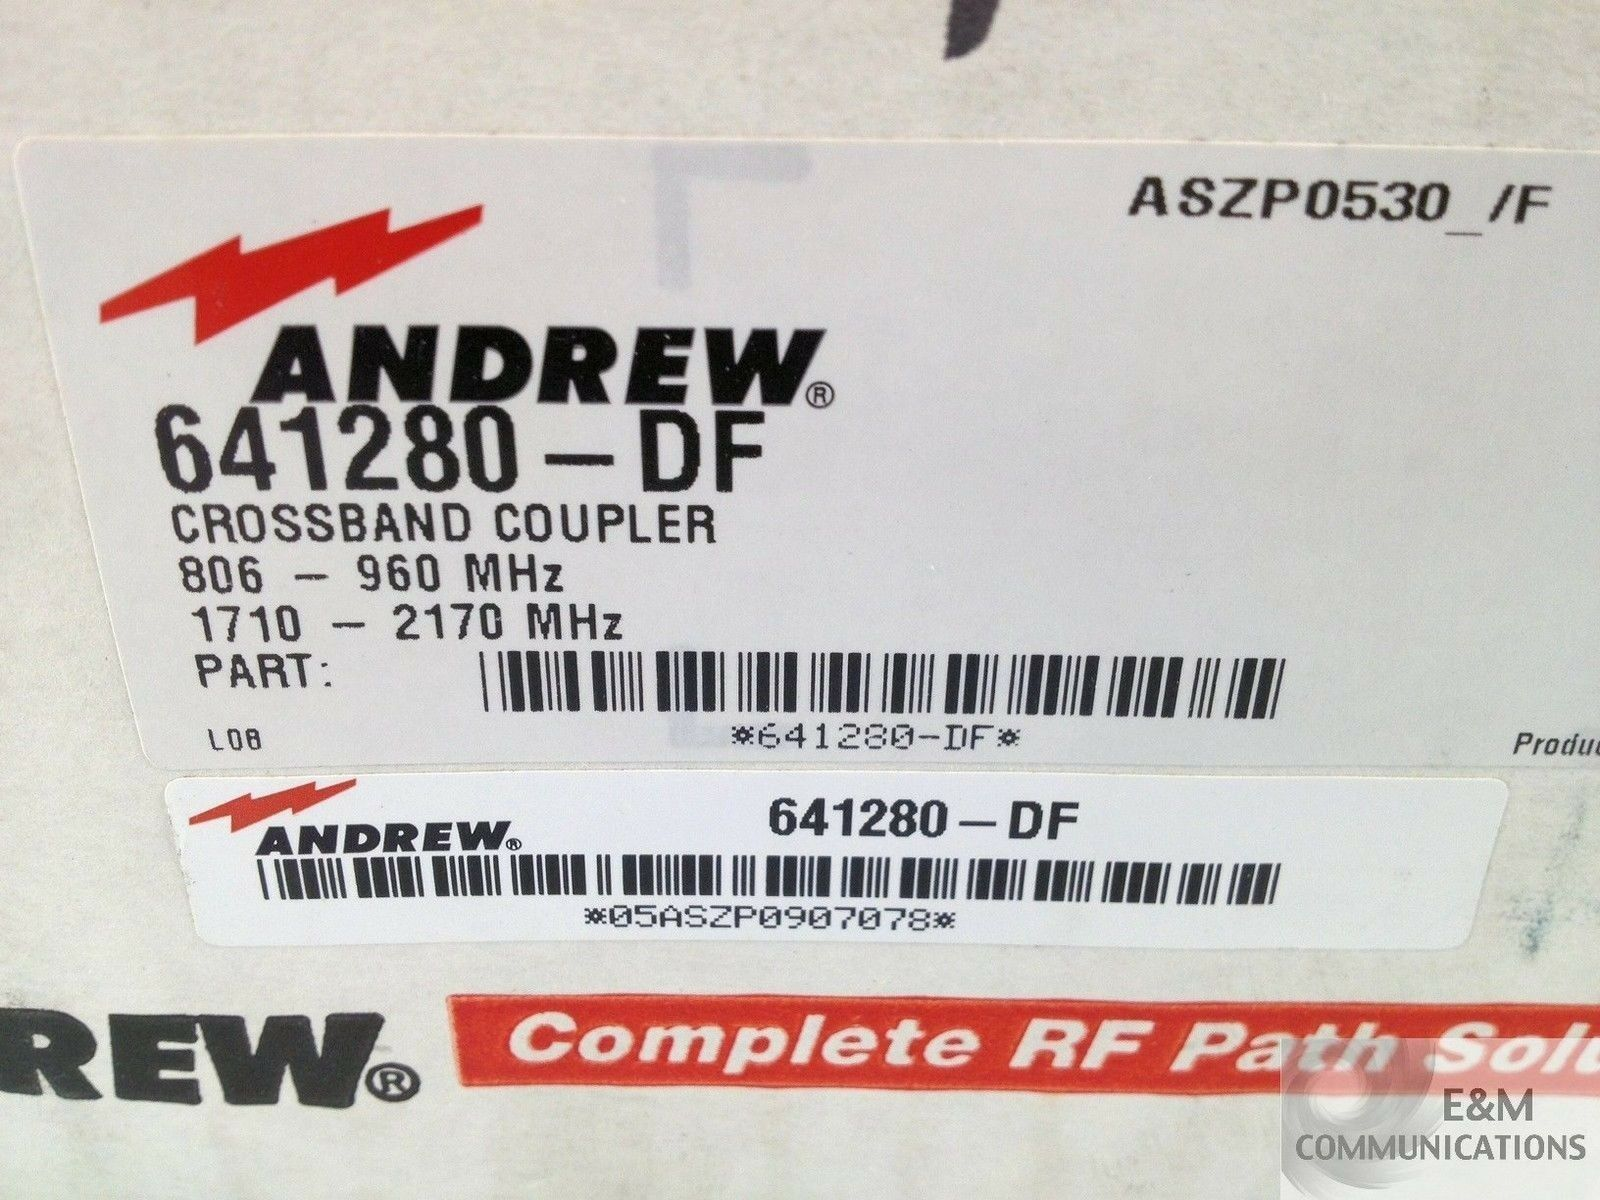 641280-DF ANDREW CROSSBAND COUPLER 806-960 MHz 1710-2170 MHz NEW OUT OF BOX